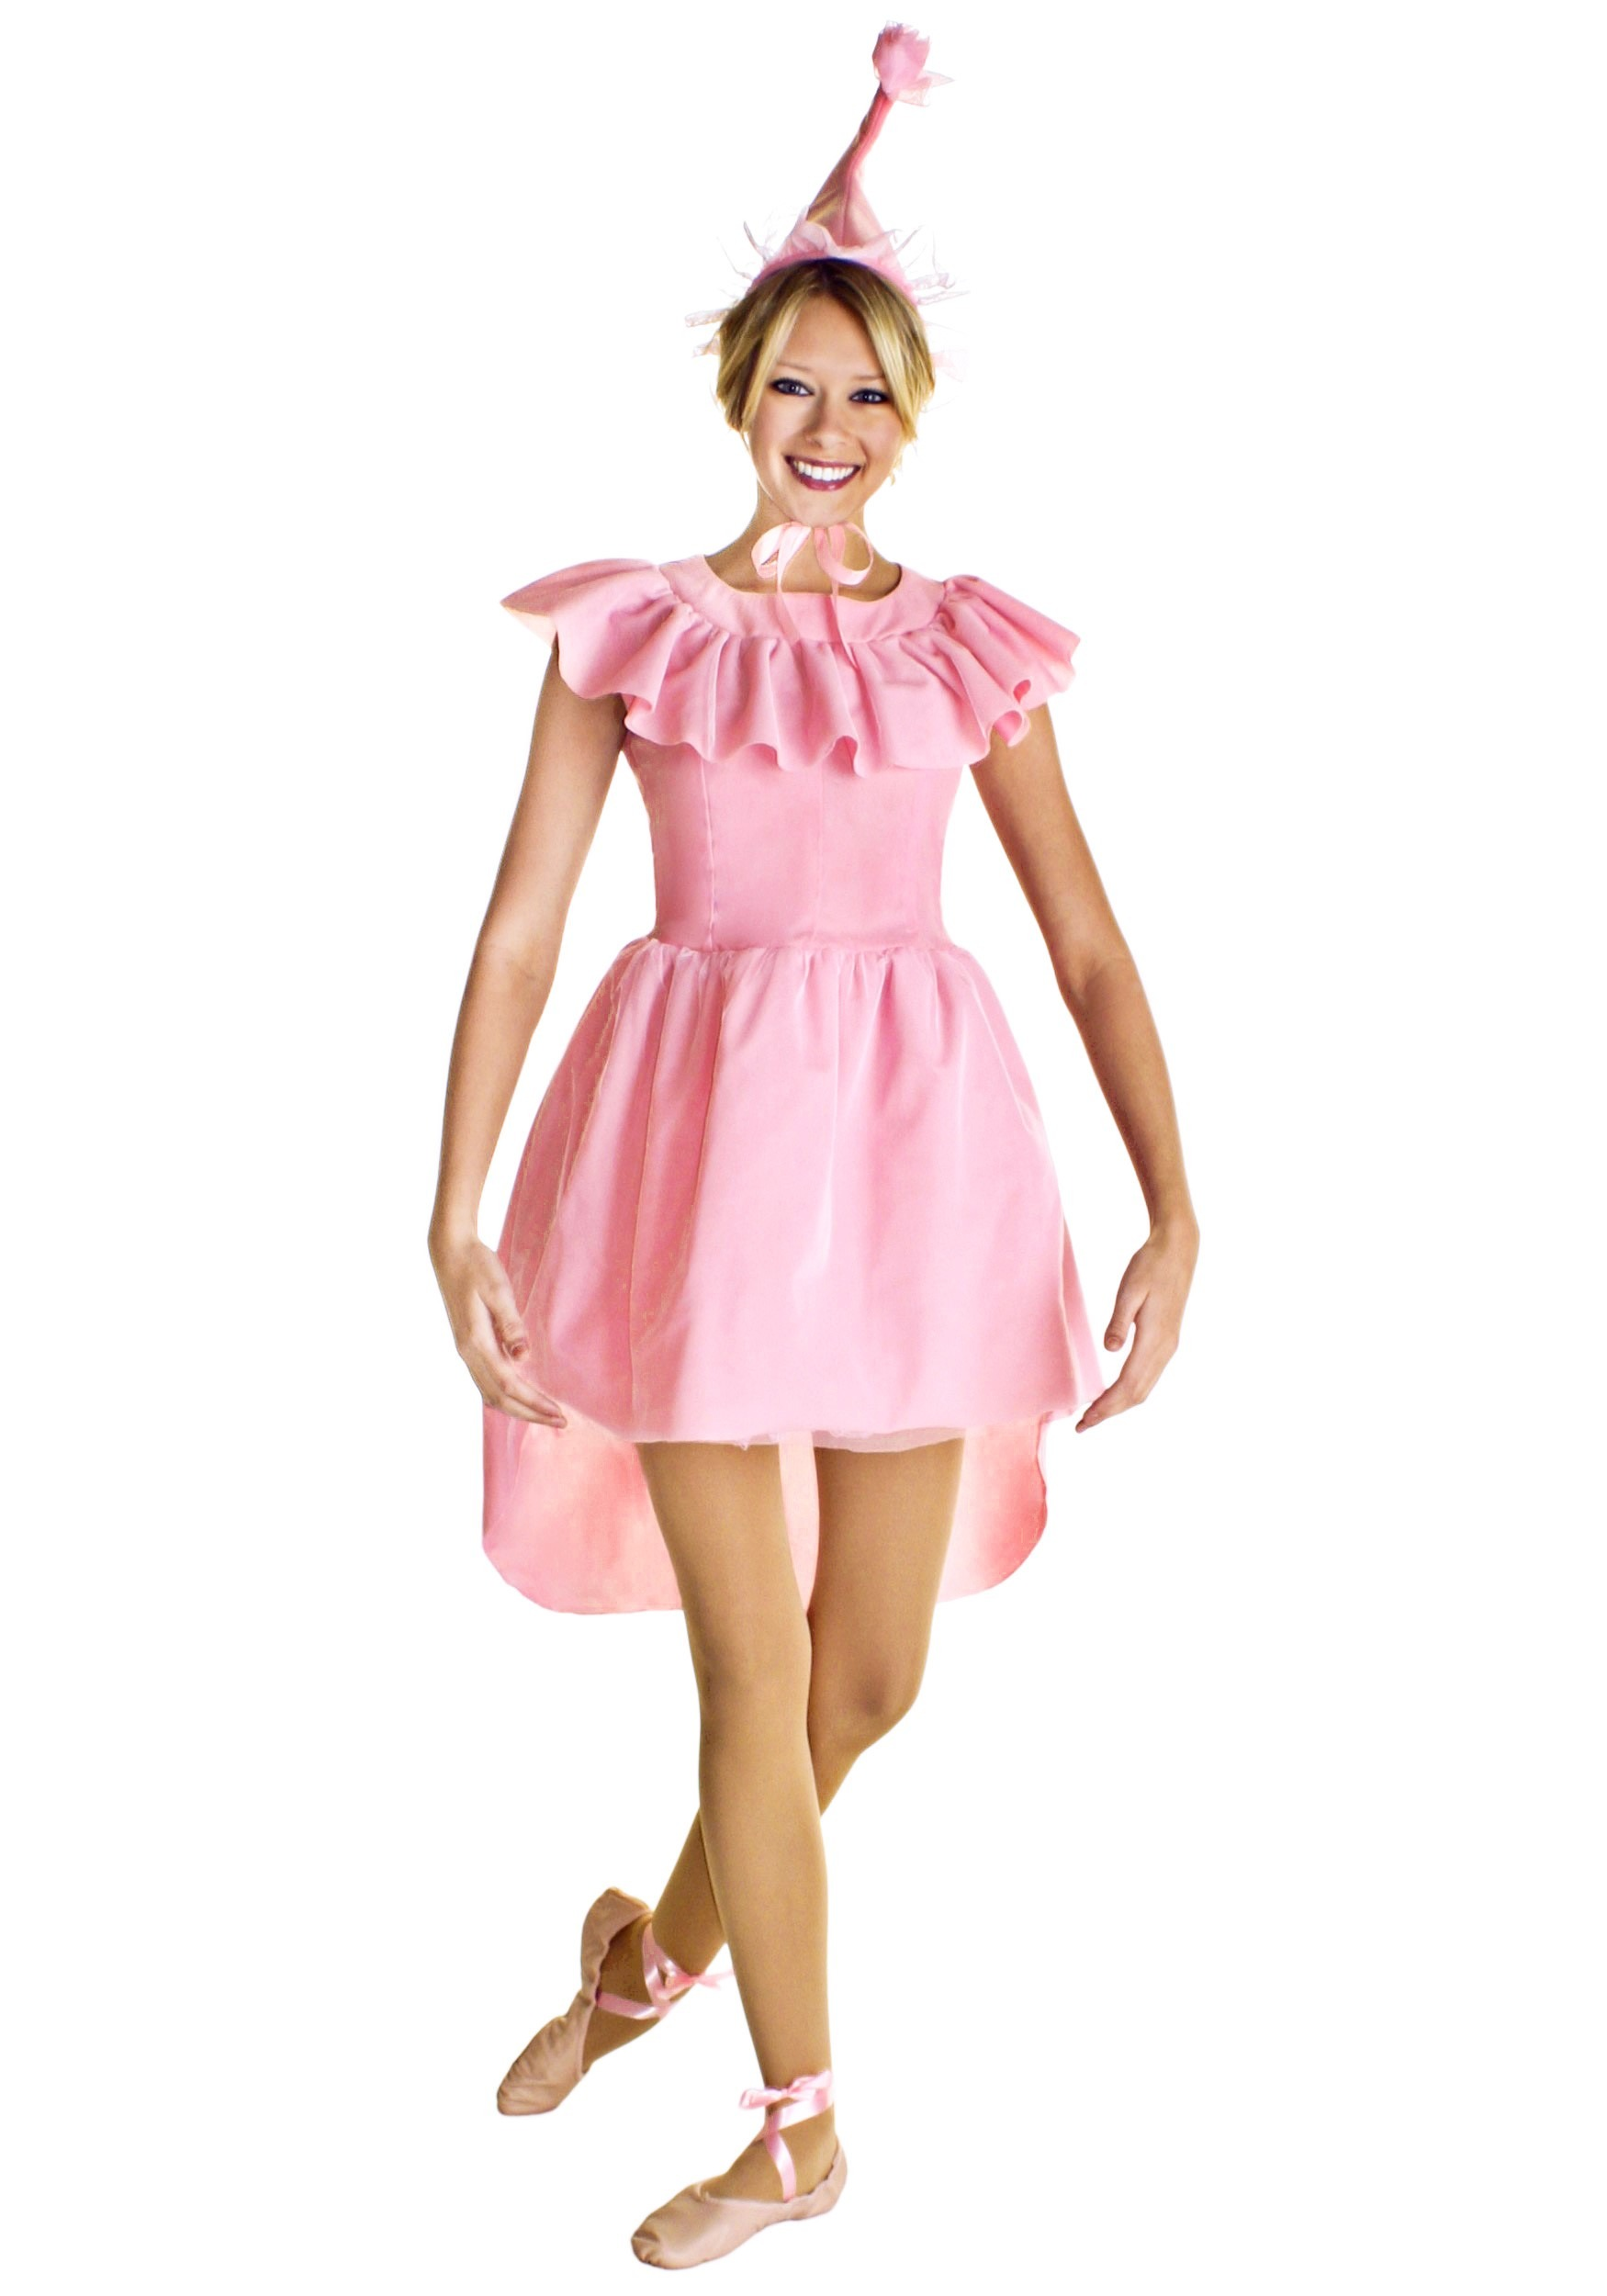 This is a pink and white, ballerina costume in a size The front length of the leotard is approx. 20 inches from neckline to crotch seam and the underarm width is approx. 28 inches unstretched.